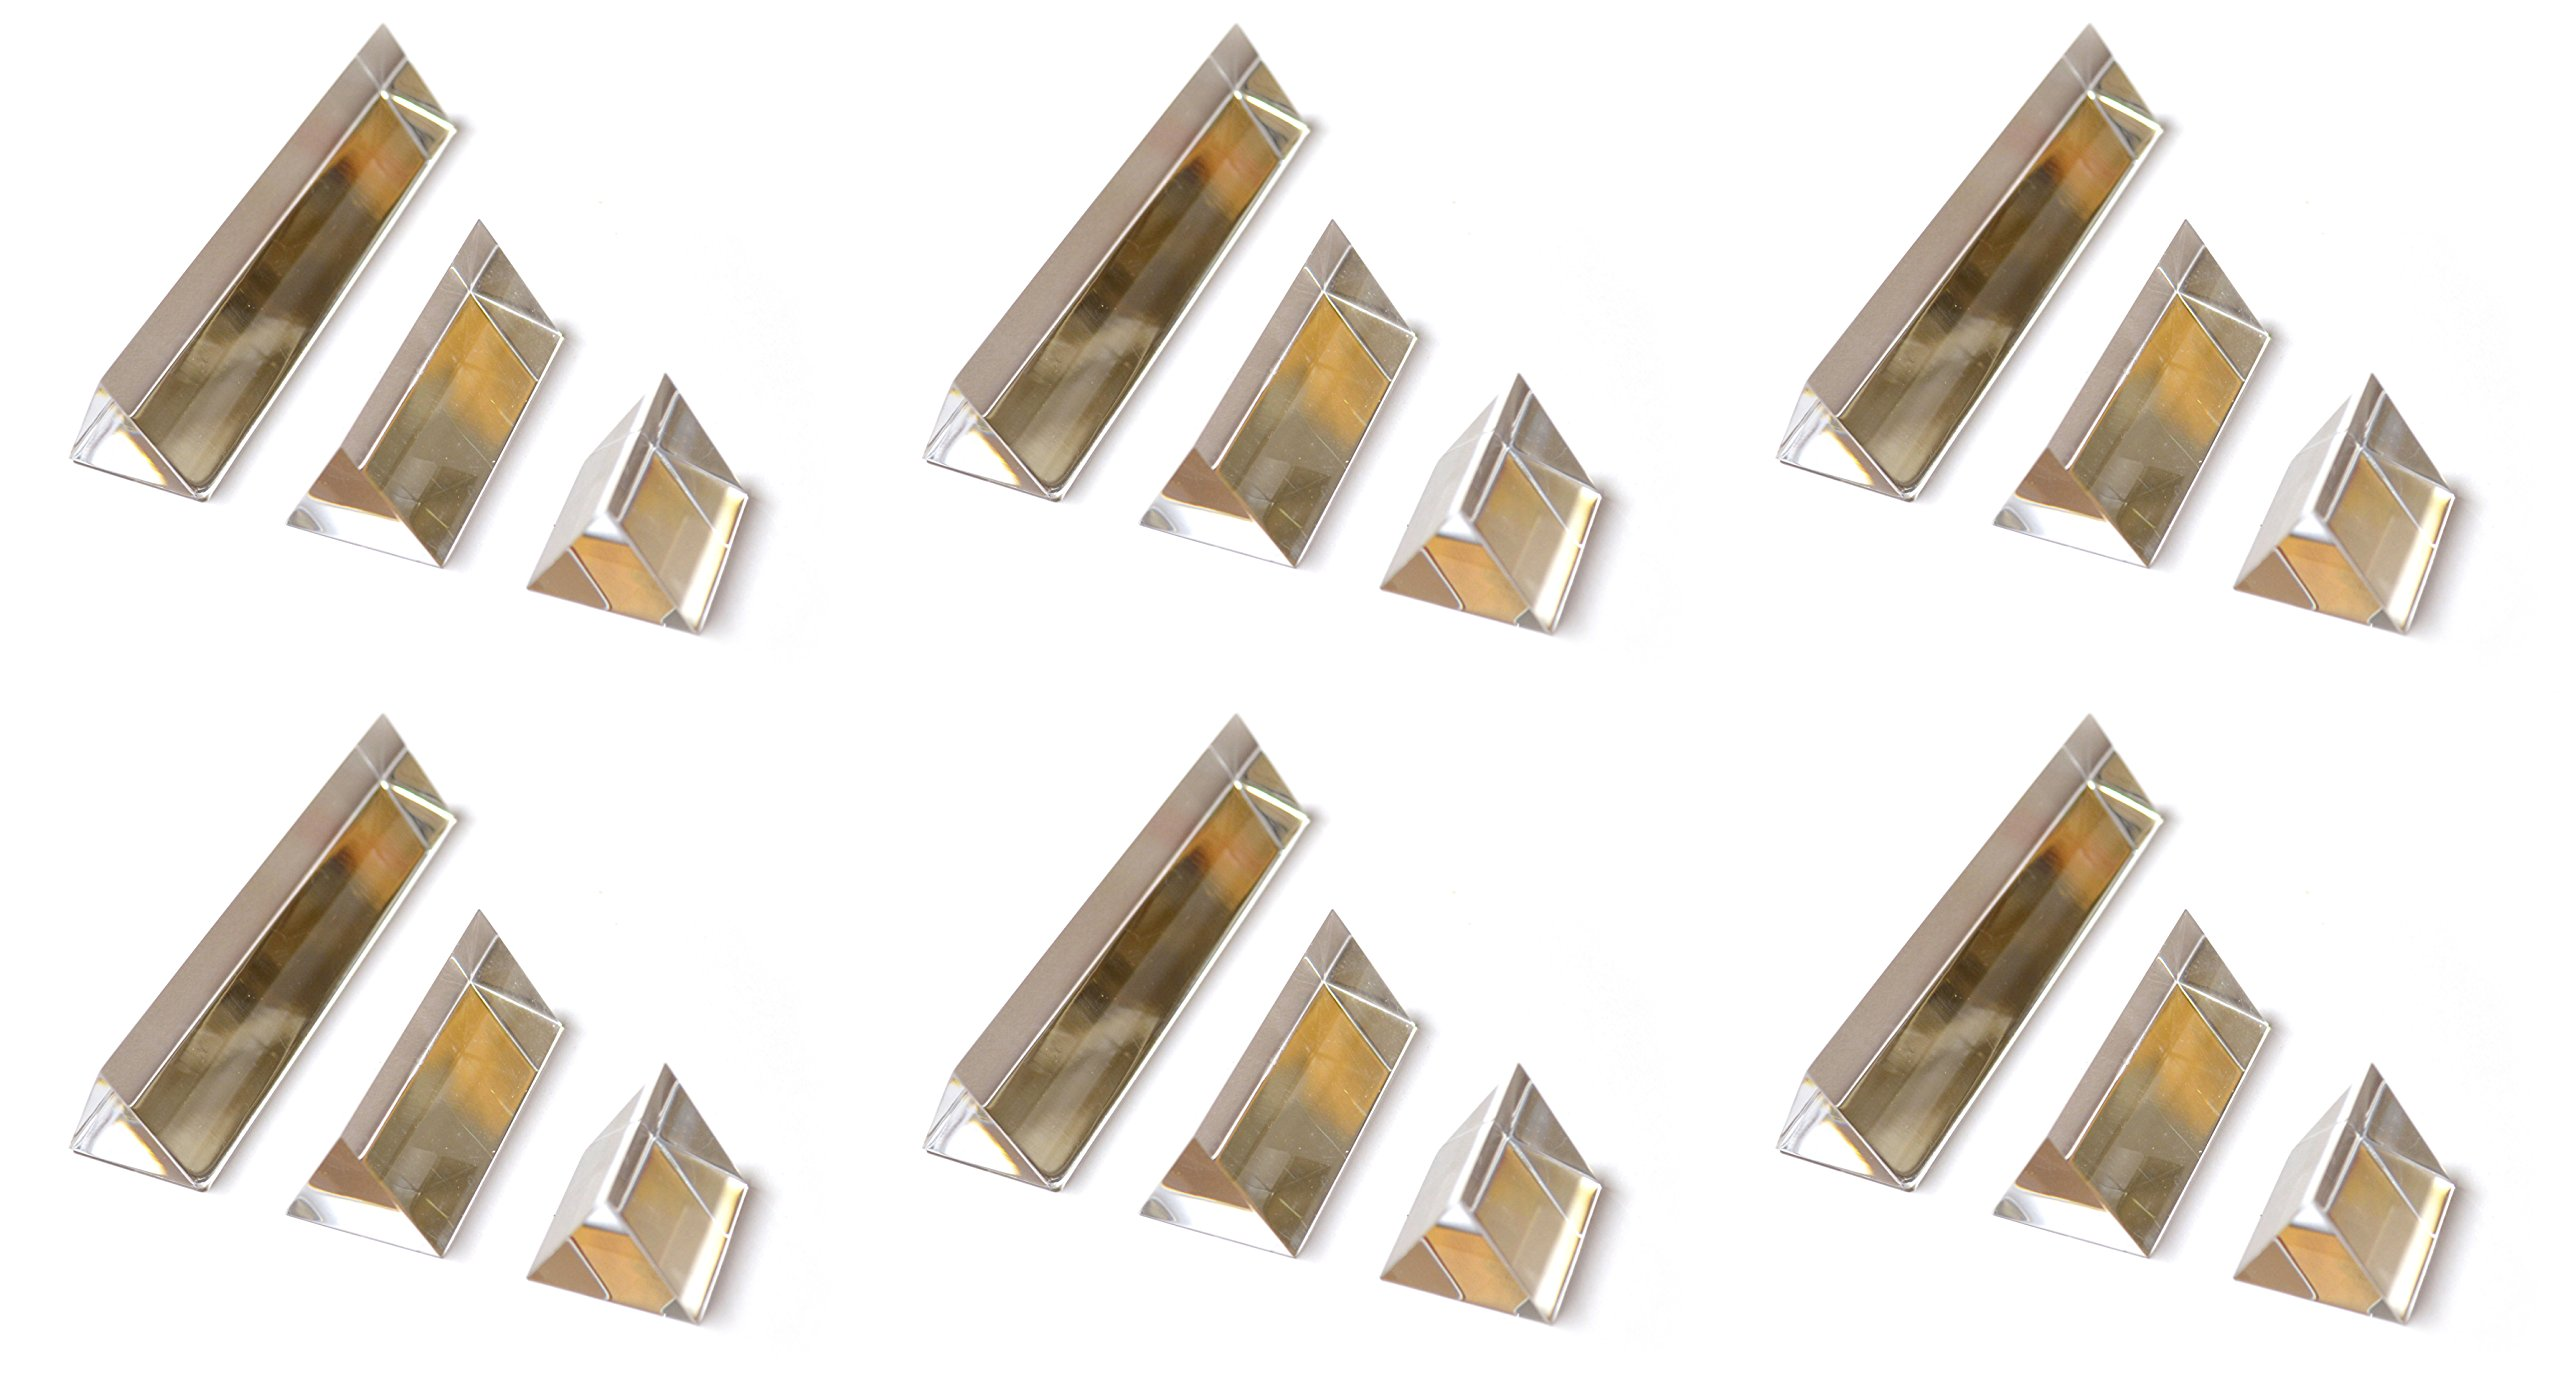 Classroom Set of Prisms - 6 Sets of (3) Equilateral Acrylic Prisms with 1in. Sides - 1in, 2in, 4in Lengths